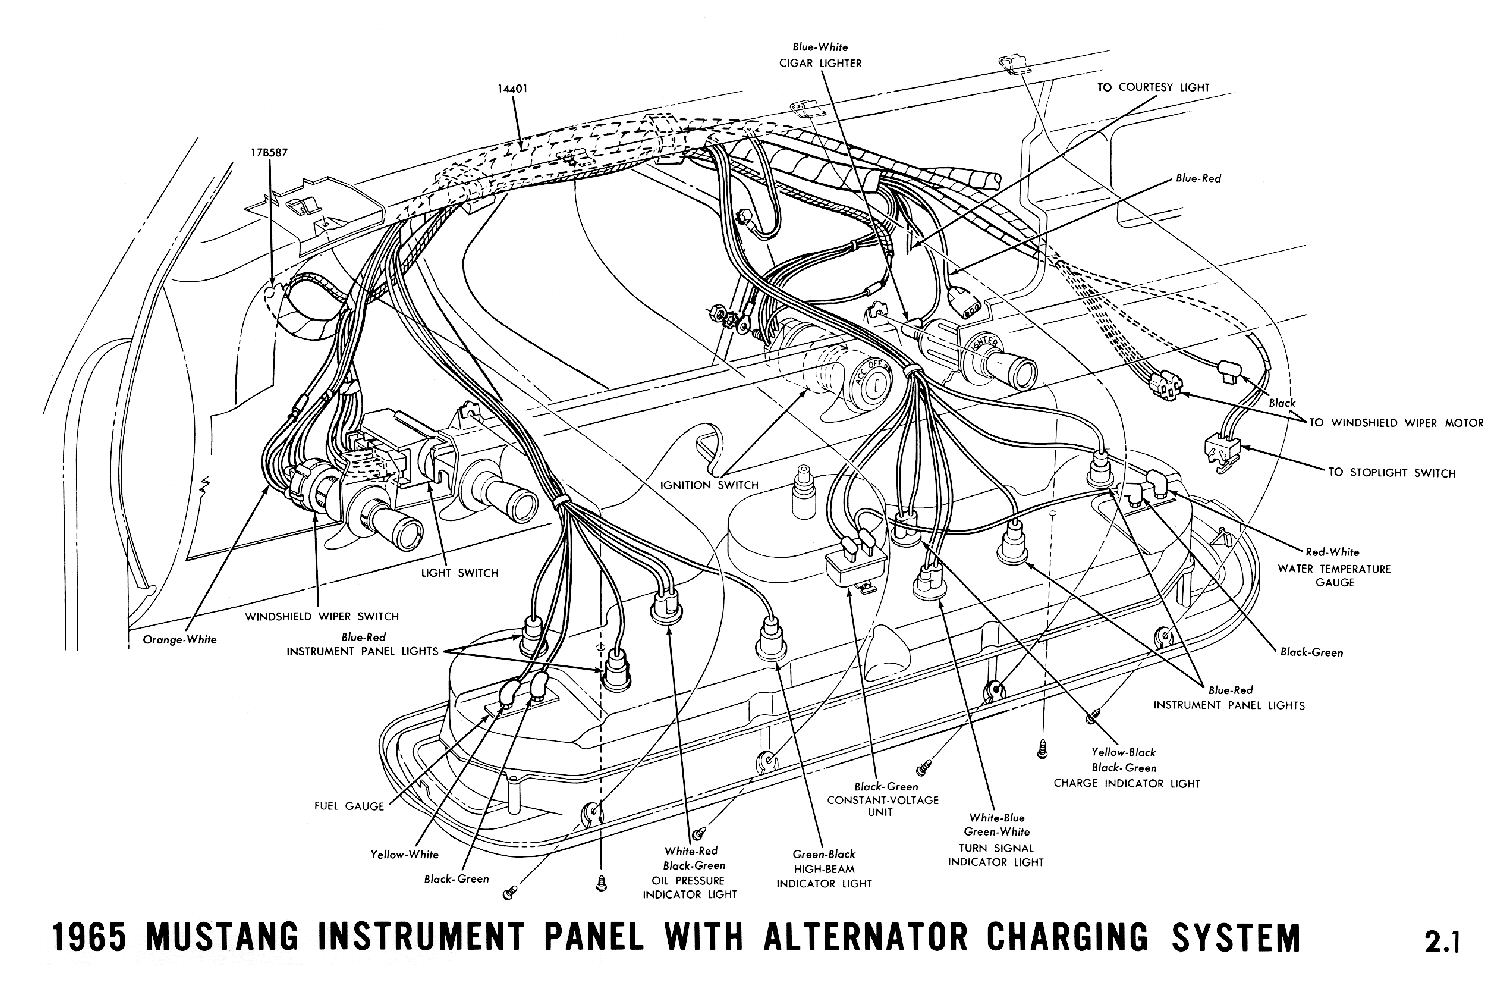 1965a 1965 mustang wiring diagrams average joe restoration 1966 mustang headlight wiring diagram at readyjetset.co